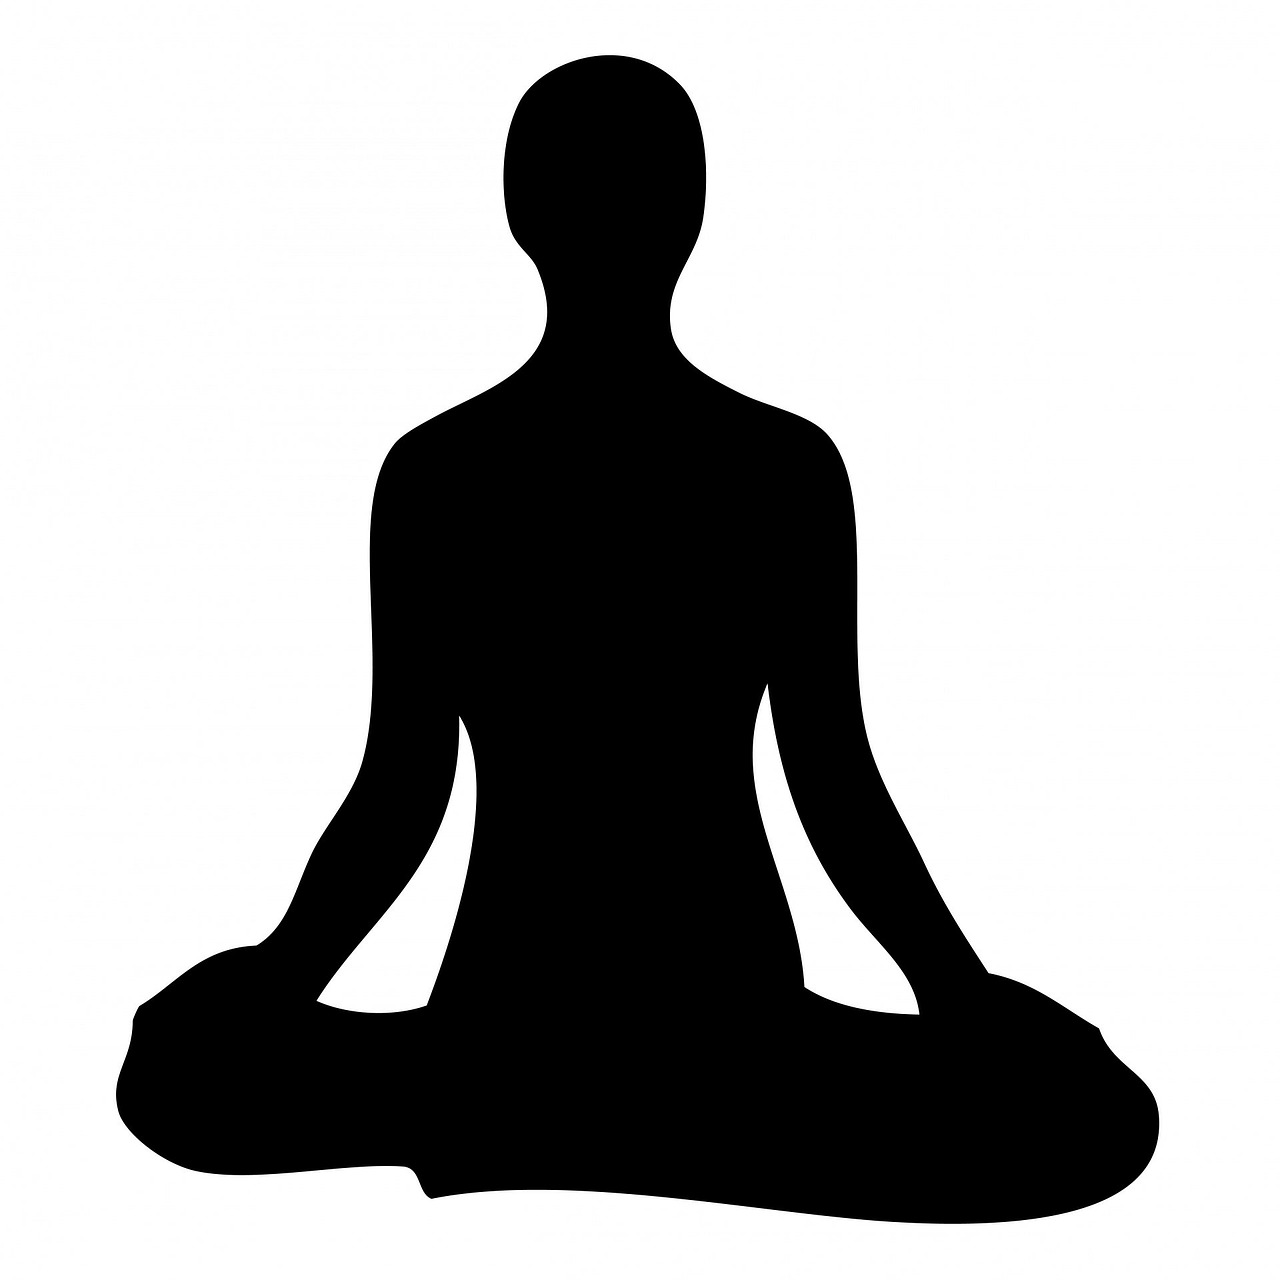 Yoga clipart free silhouettes image royalty free Free Meditating Cliparts, Download Free Clip Art, Free Clip Art on ... image royalty free